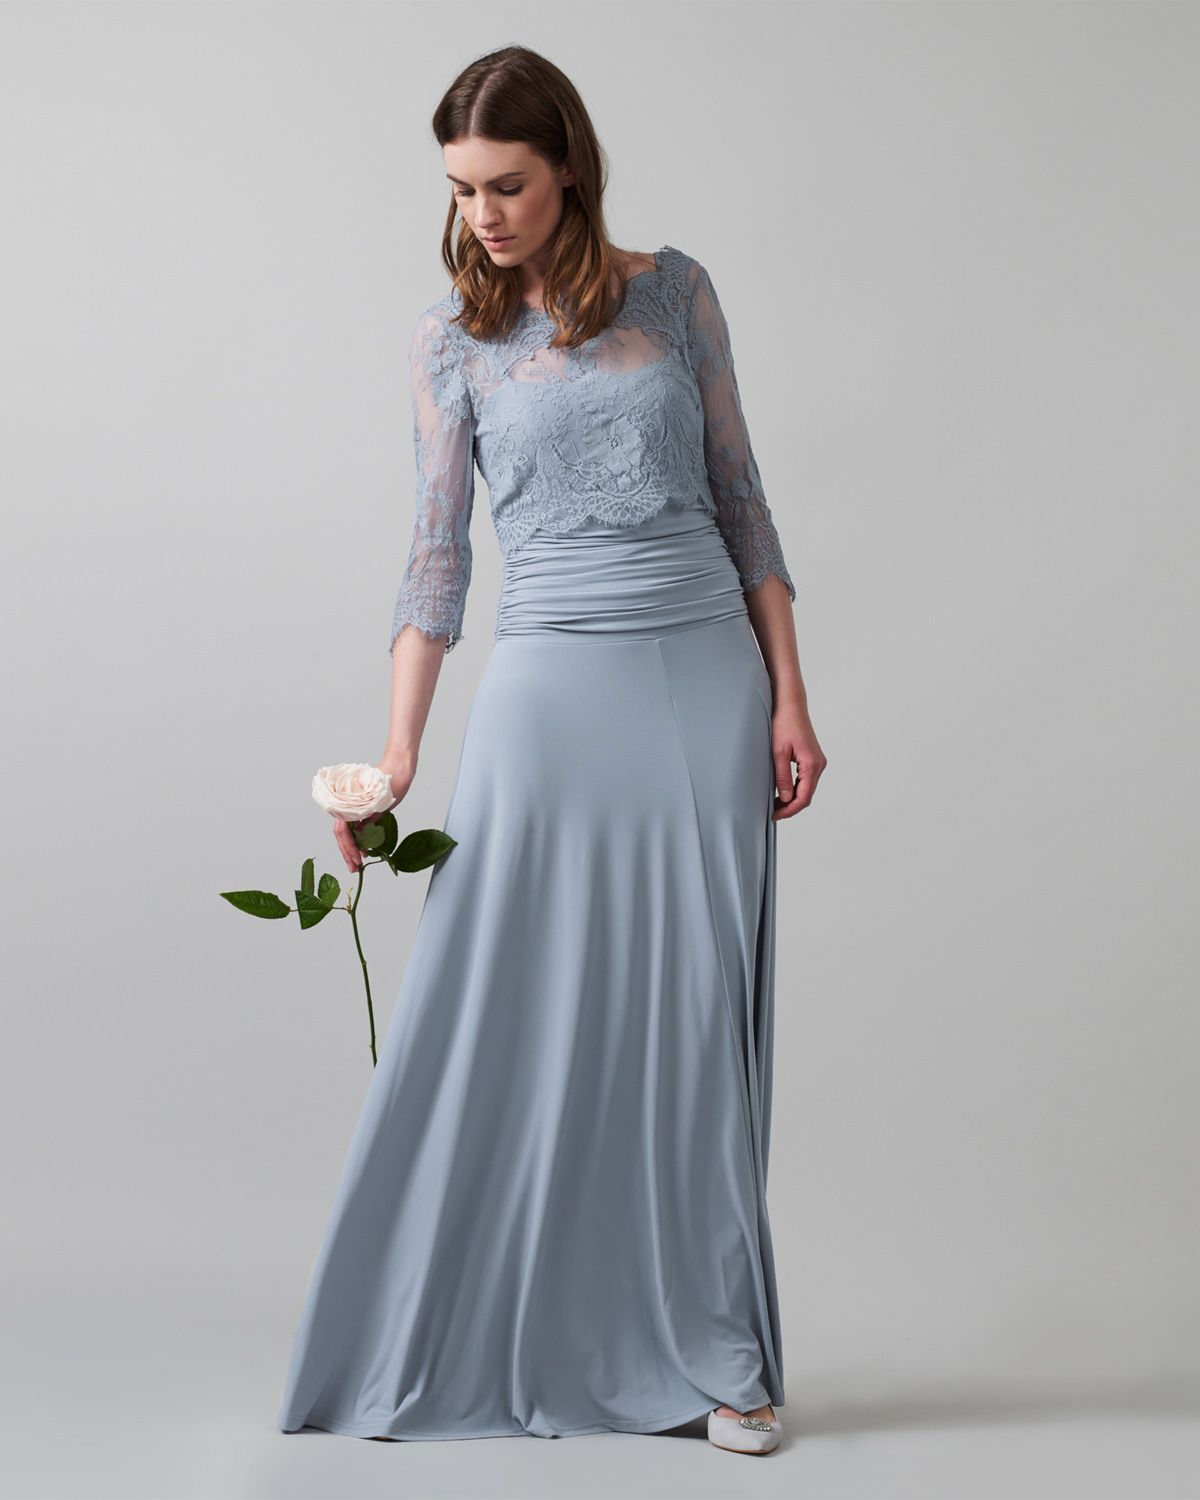 Serenity dusty blue bridesmaid dress romily lace full length serenity dusty blue bridesmaid dress romily lace full length dress phase eight ombrellifo Image collections